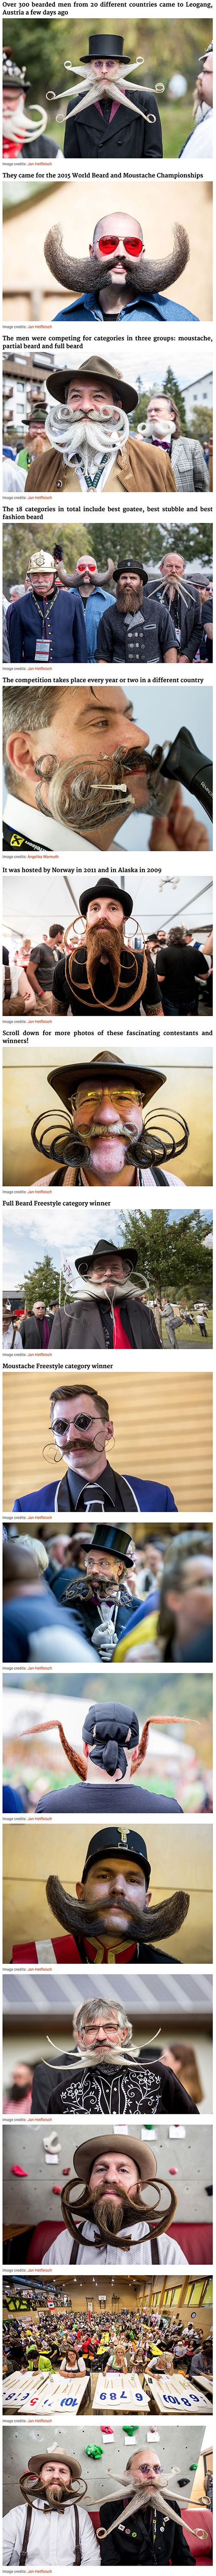 World's Most Epic Beards From 2015 World Beard And Moustache Championships.